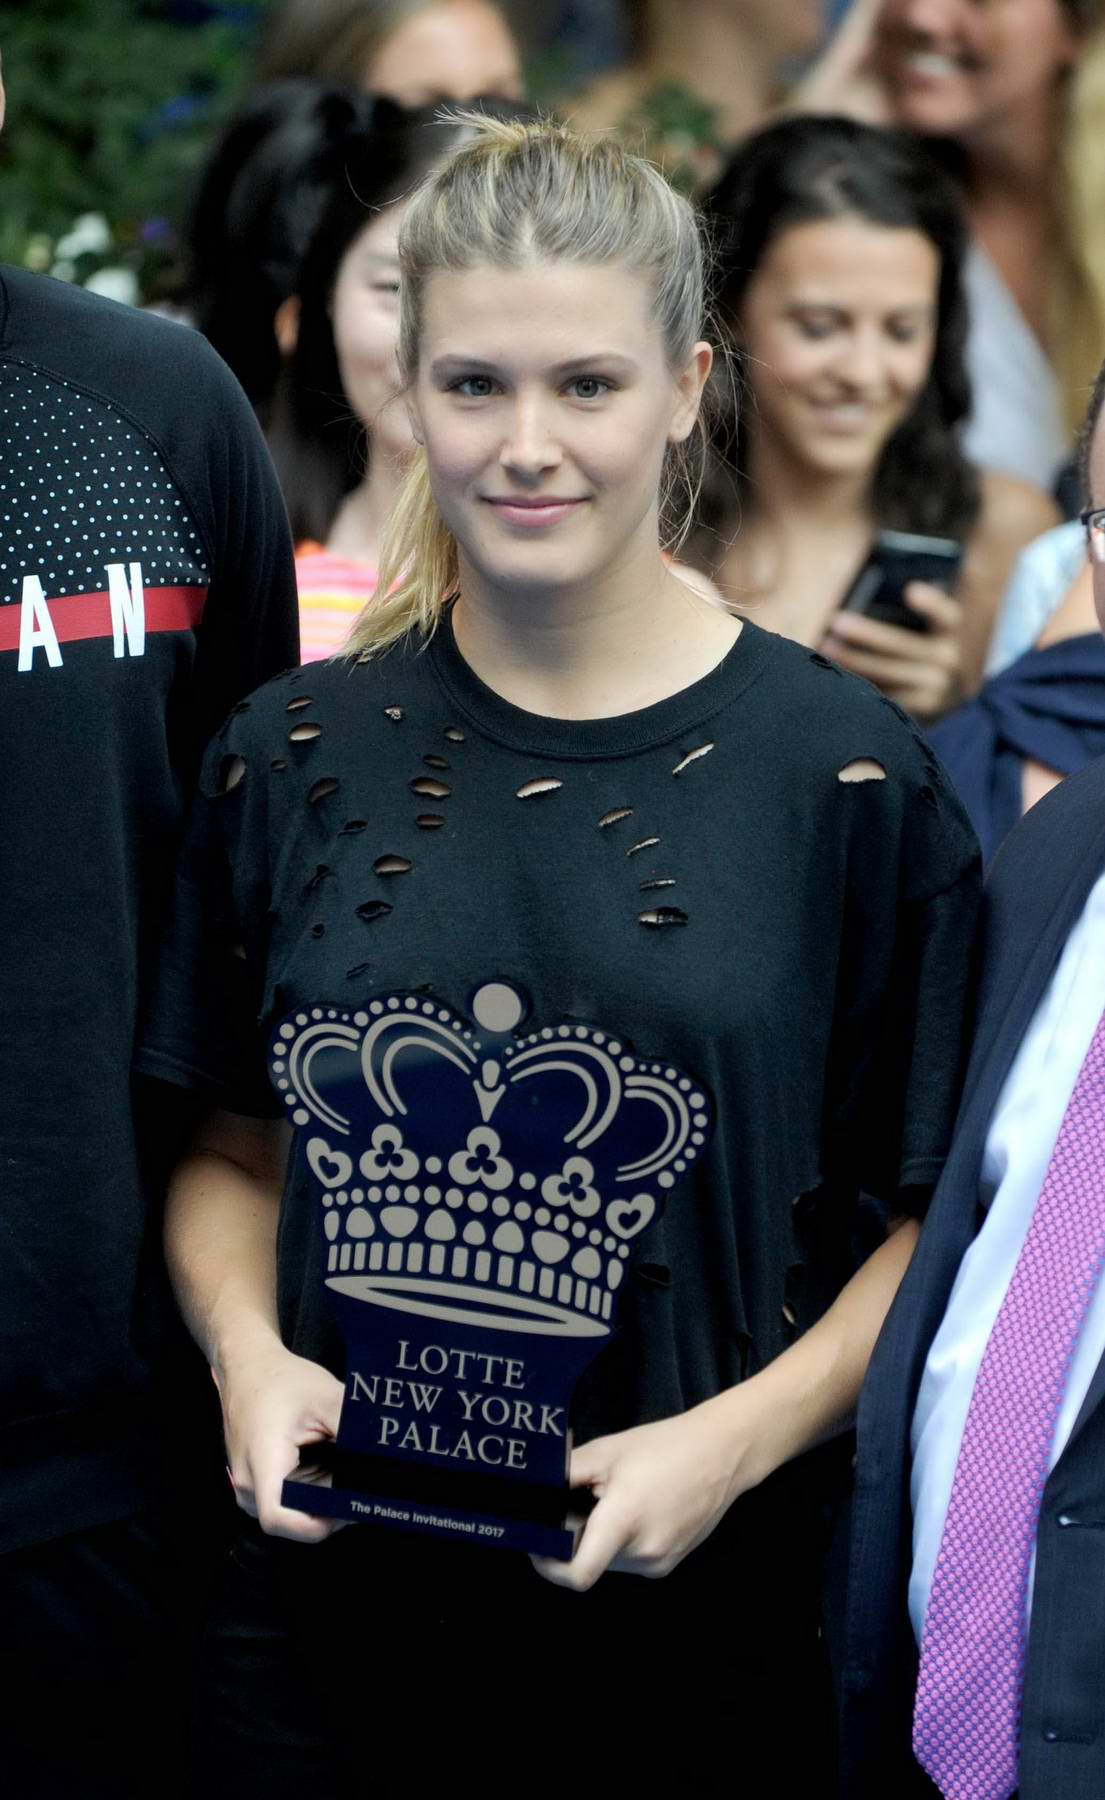 Eugenie Bouchard at Lotte New York Palace Invitational in New York